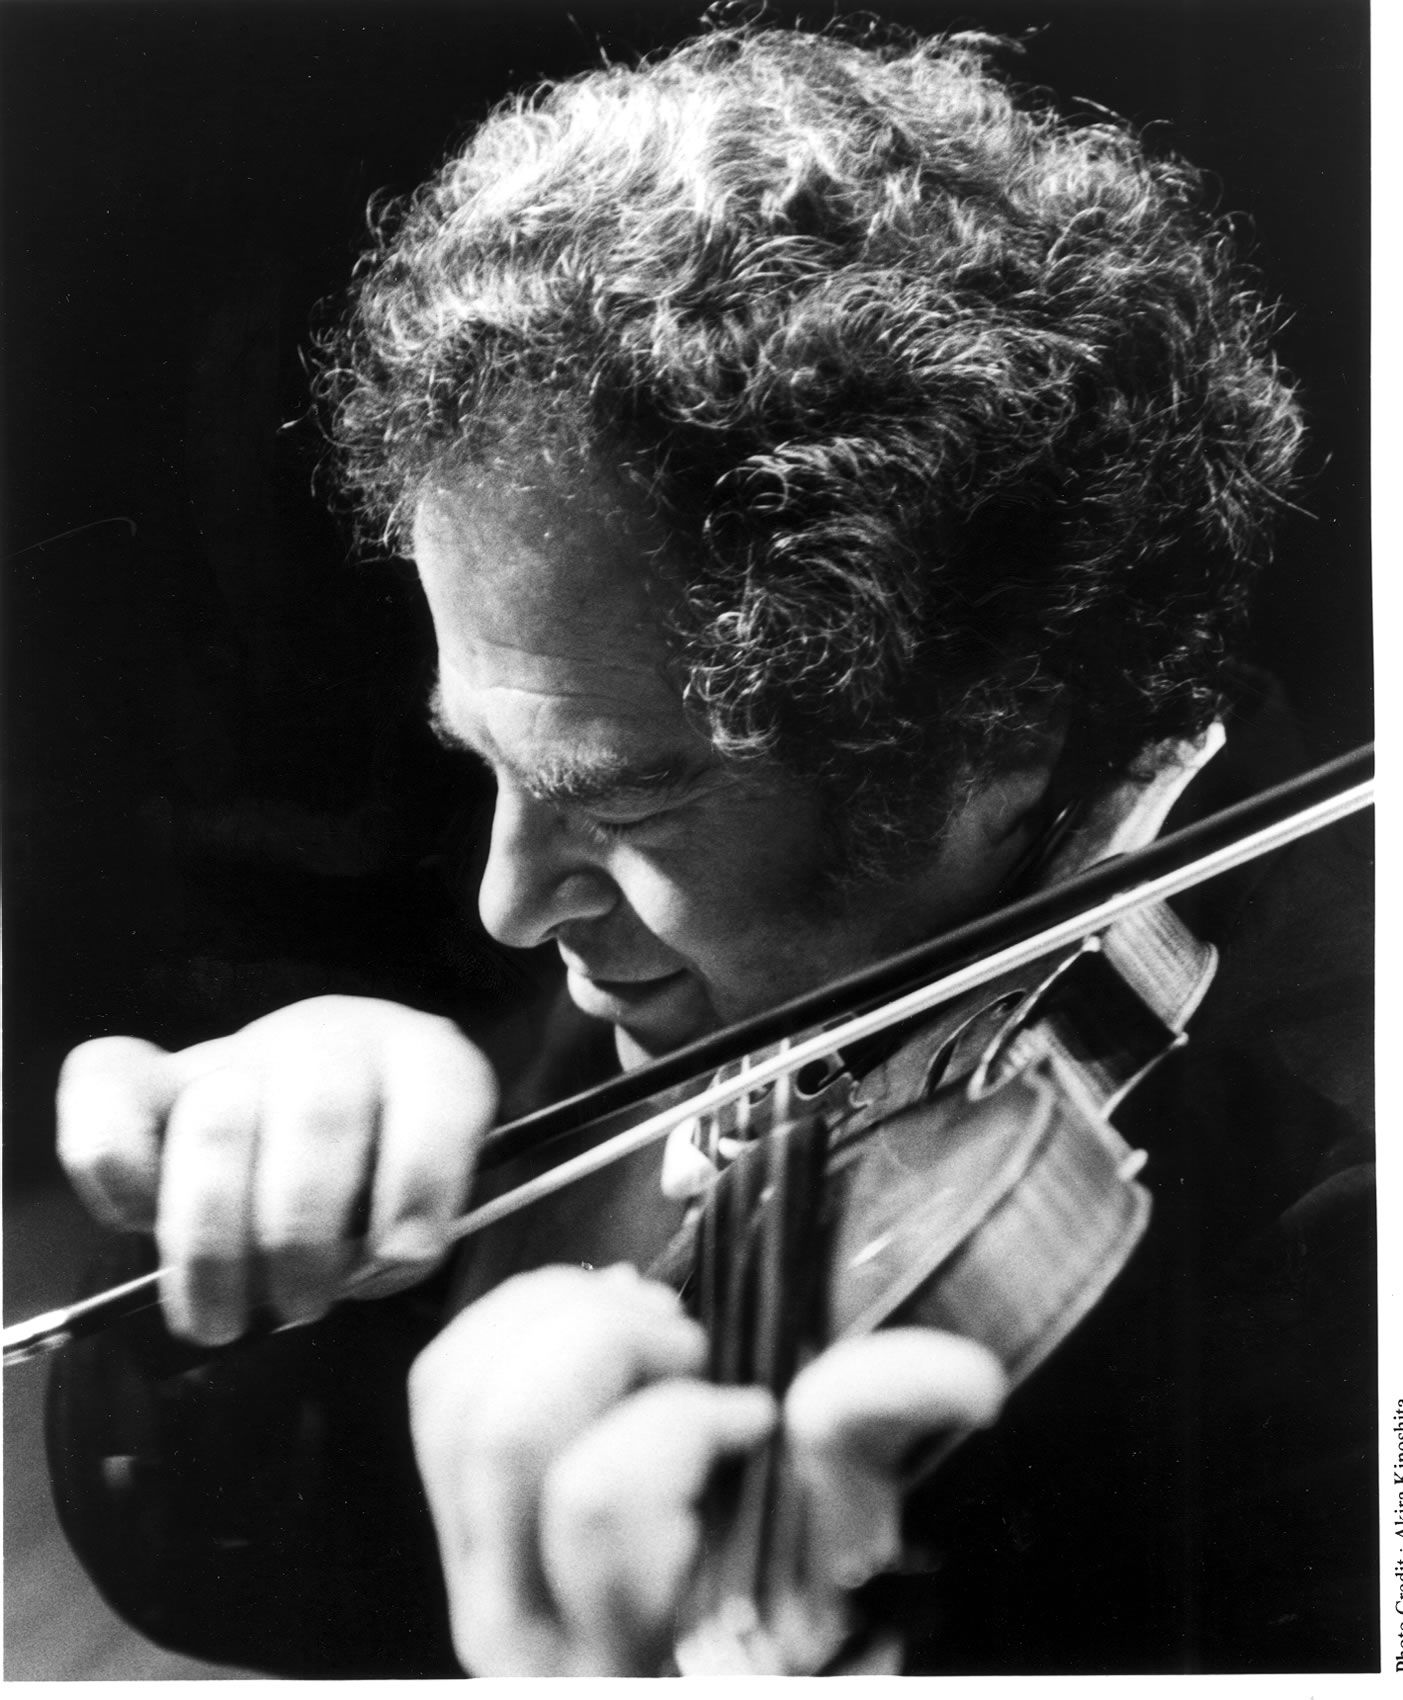 Itzhak Perlman--heavenly performer